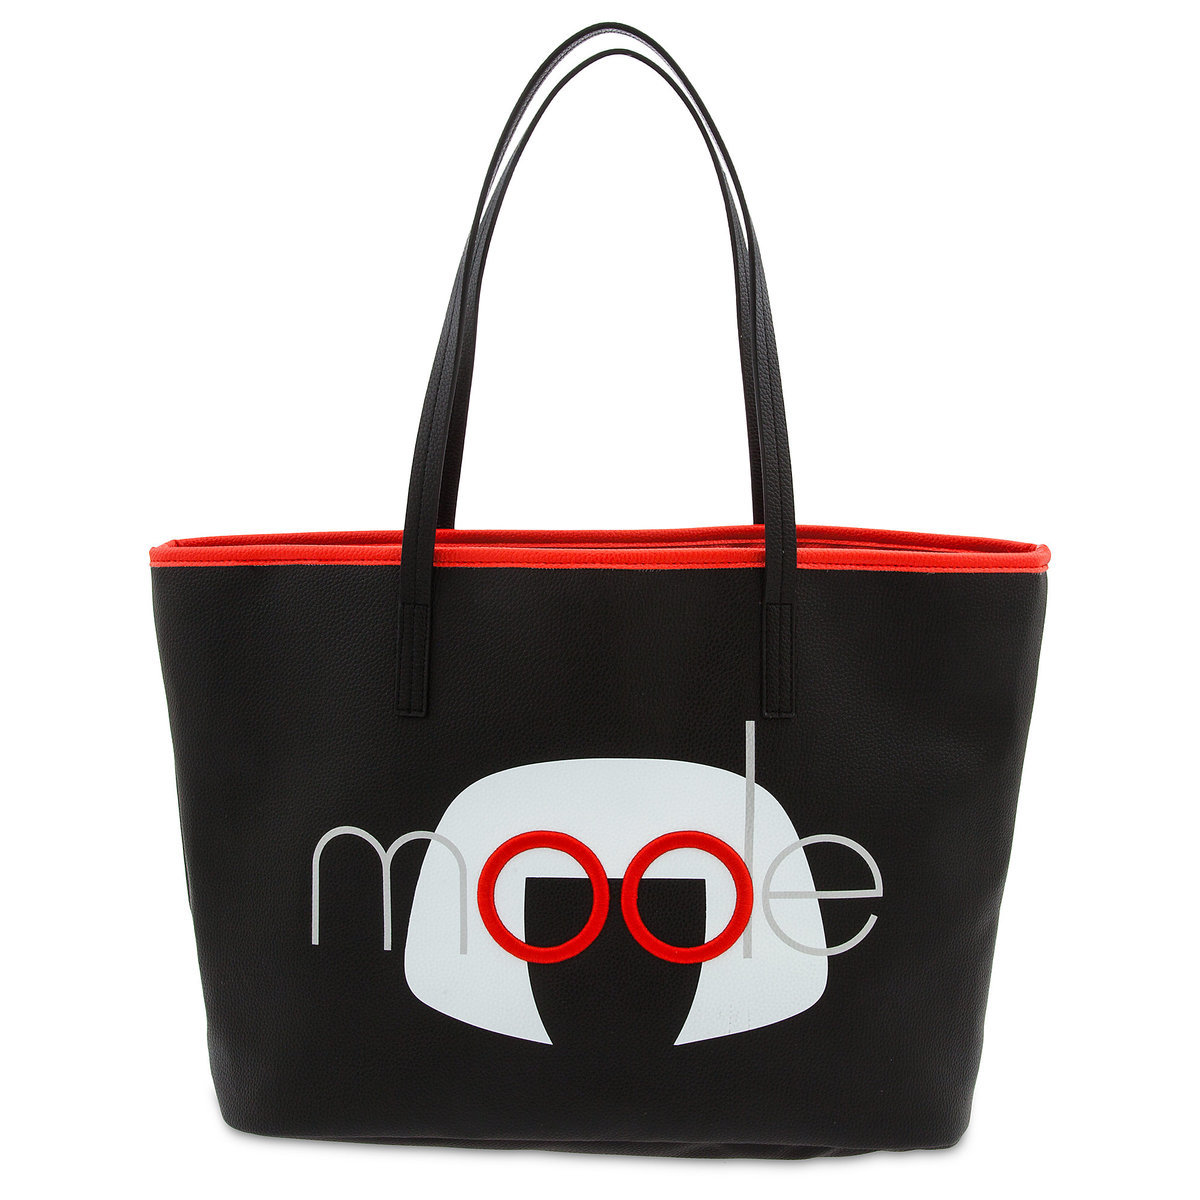 Product Image of Edna Mode Tote Bag - Incredibles 2 # 1